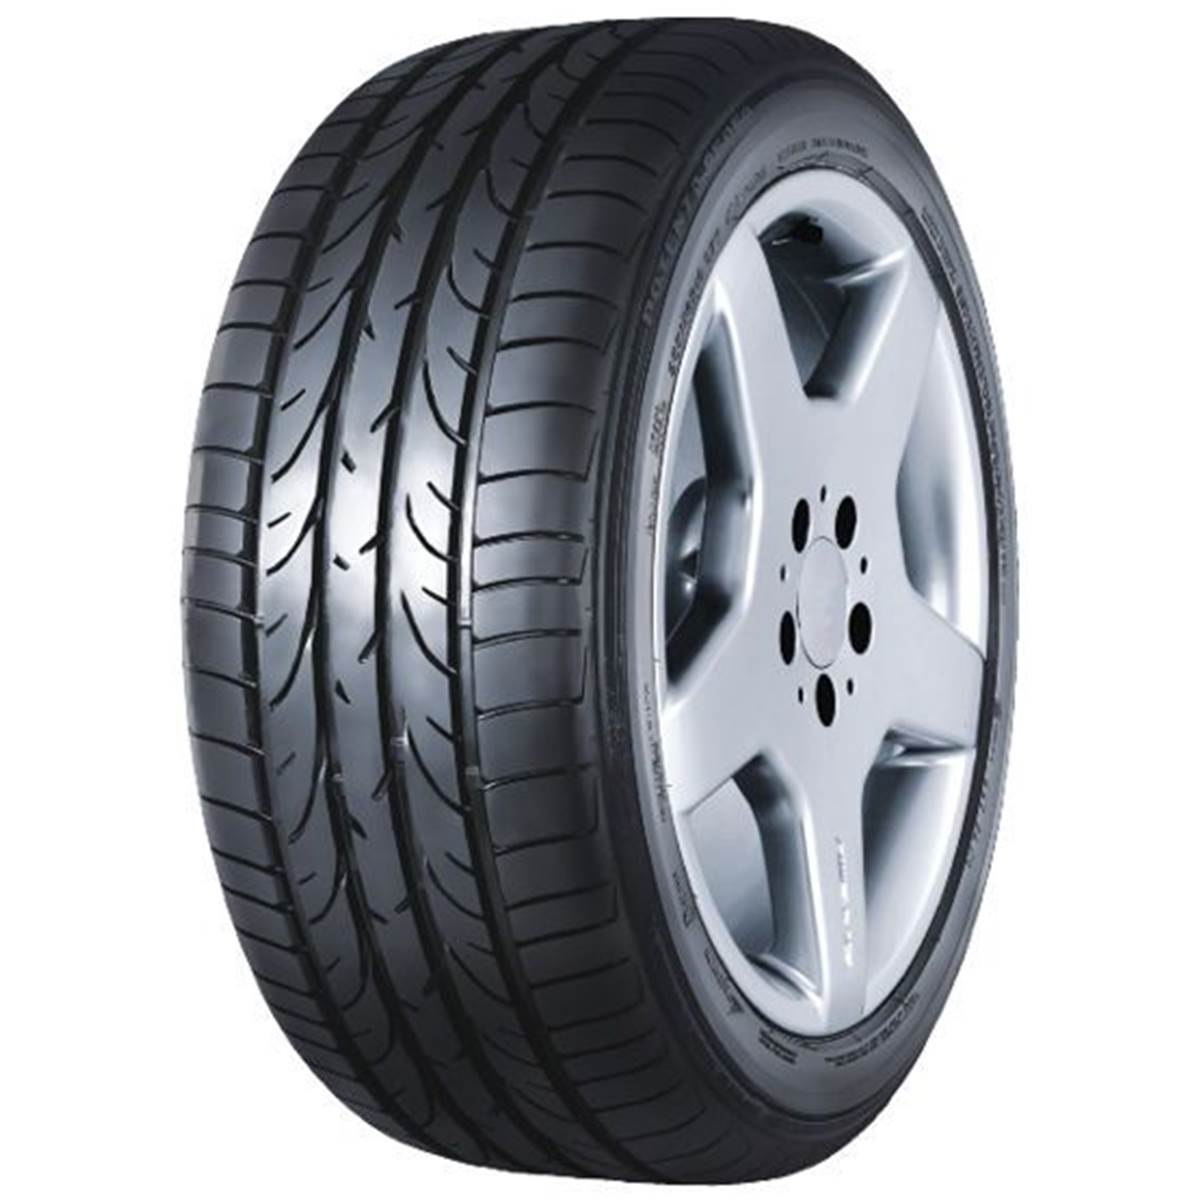 Pneu Bridgestone 225/50R17 98Y Potenza Re050 XL